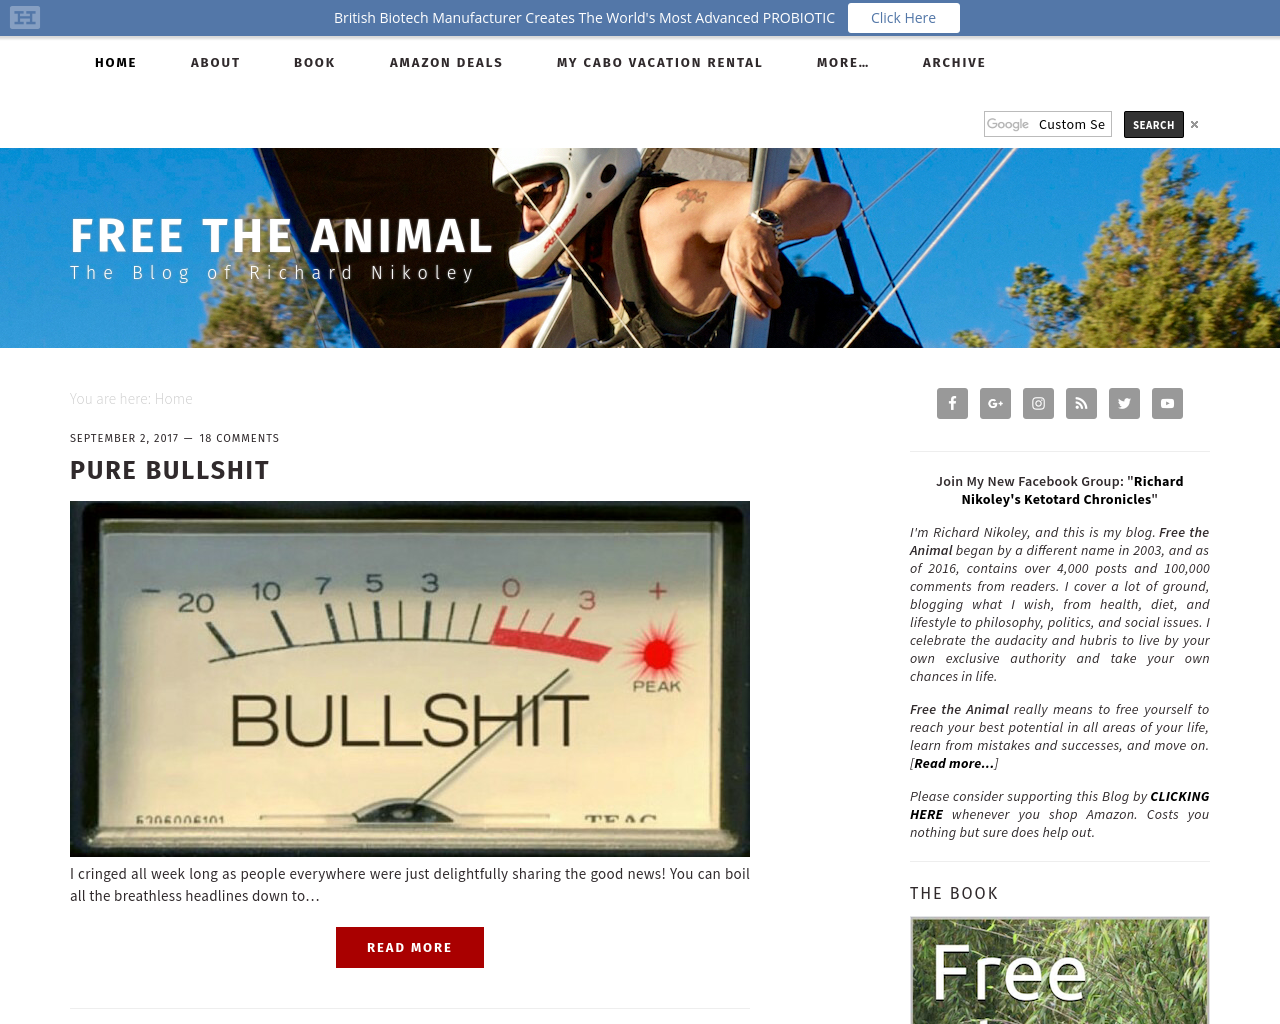 Free-The-Animal-Advertising-Reviews-Pricing